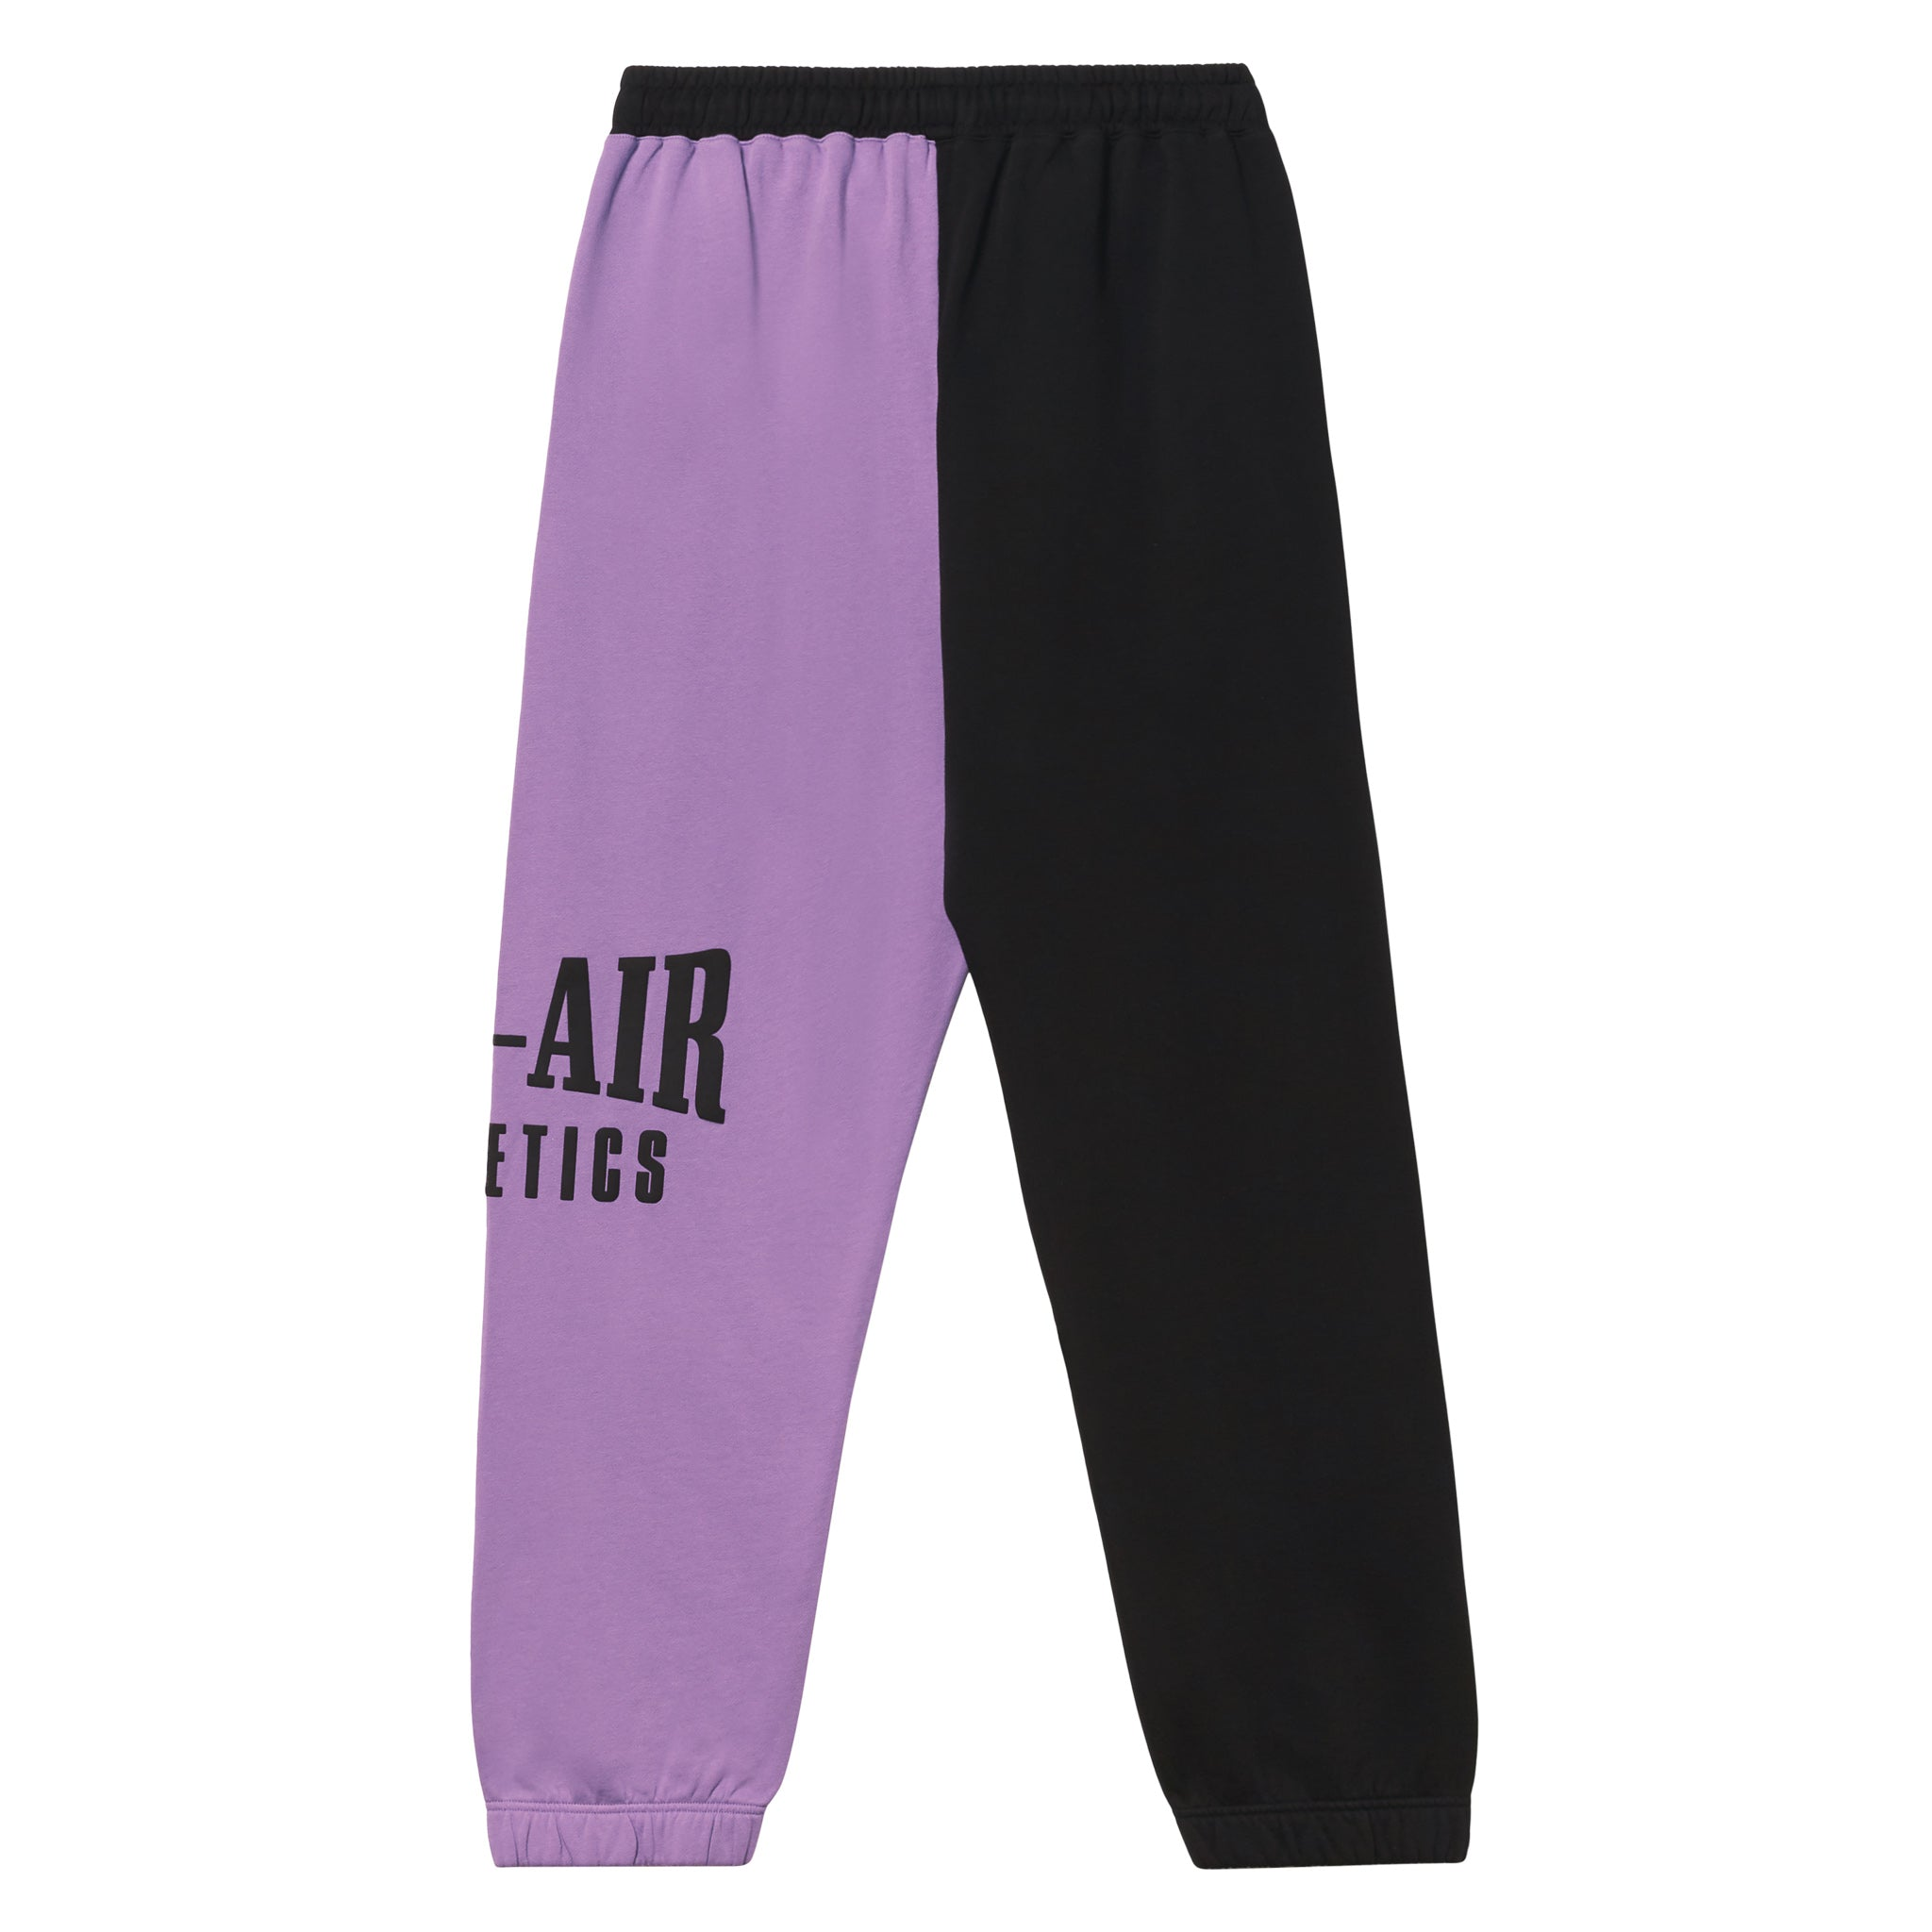 Puff Logo Sweatpant - Colorblock Sorority Pink/Vintage Black